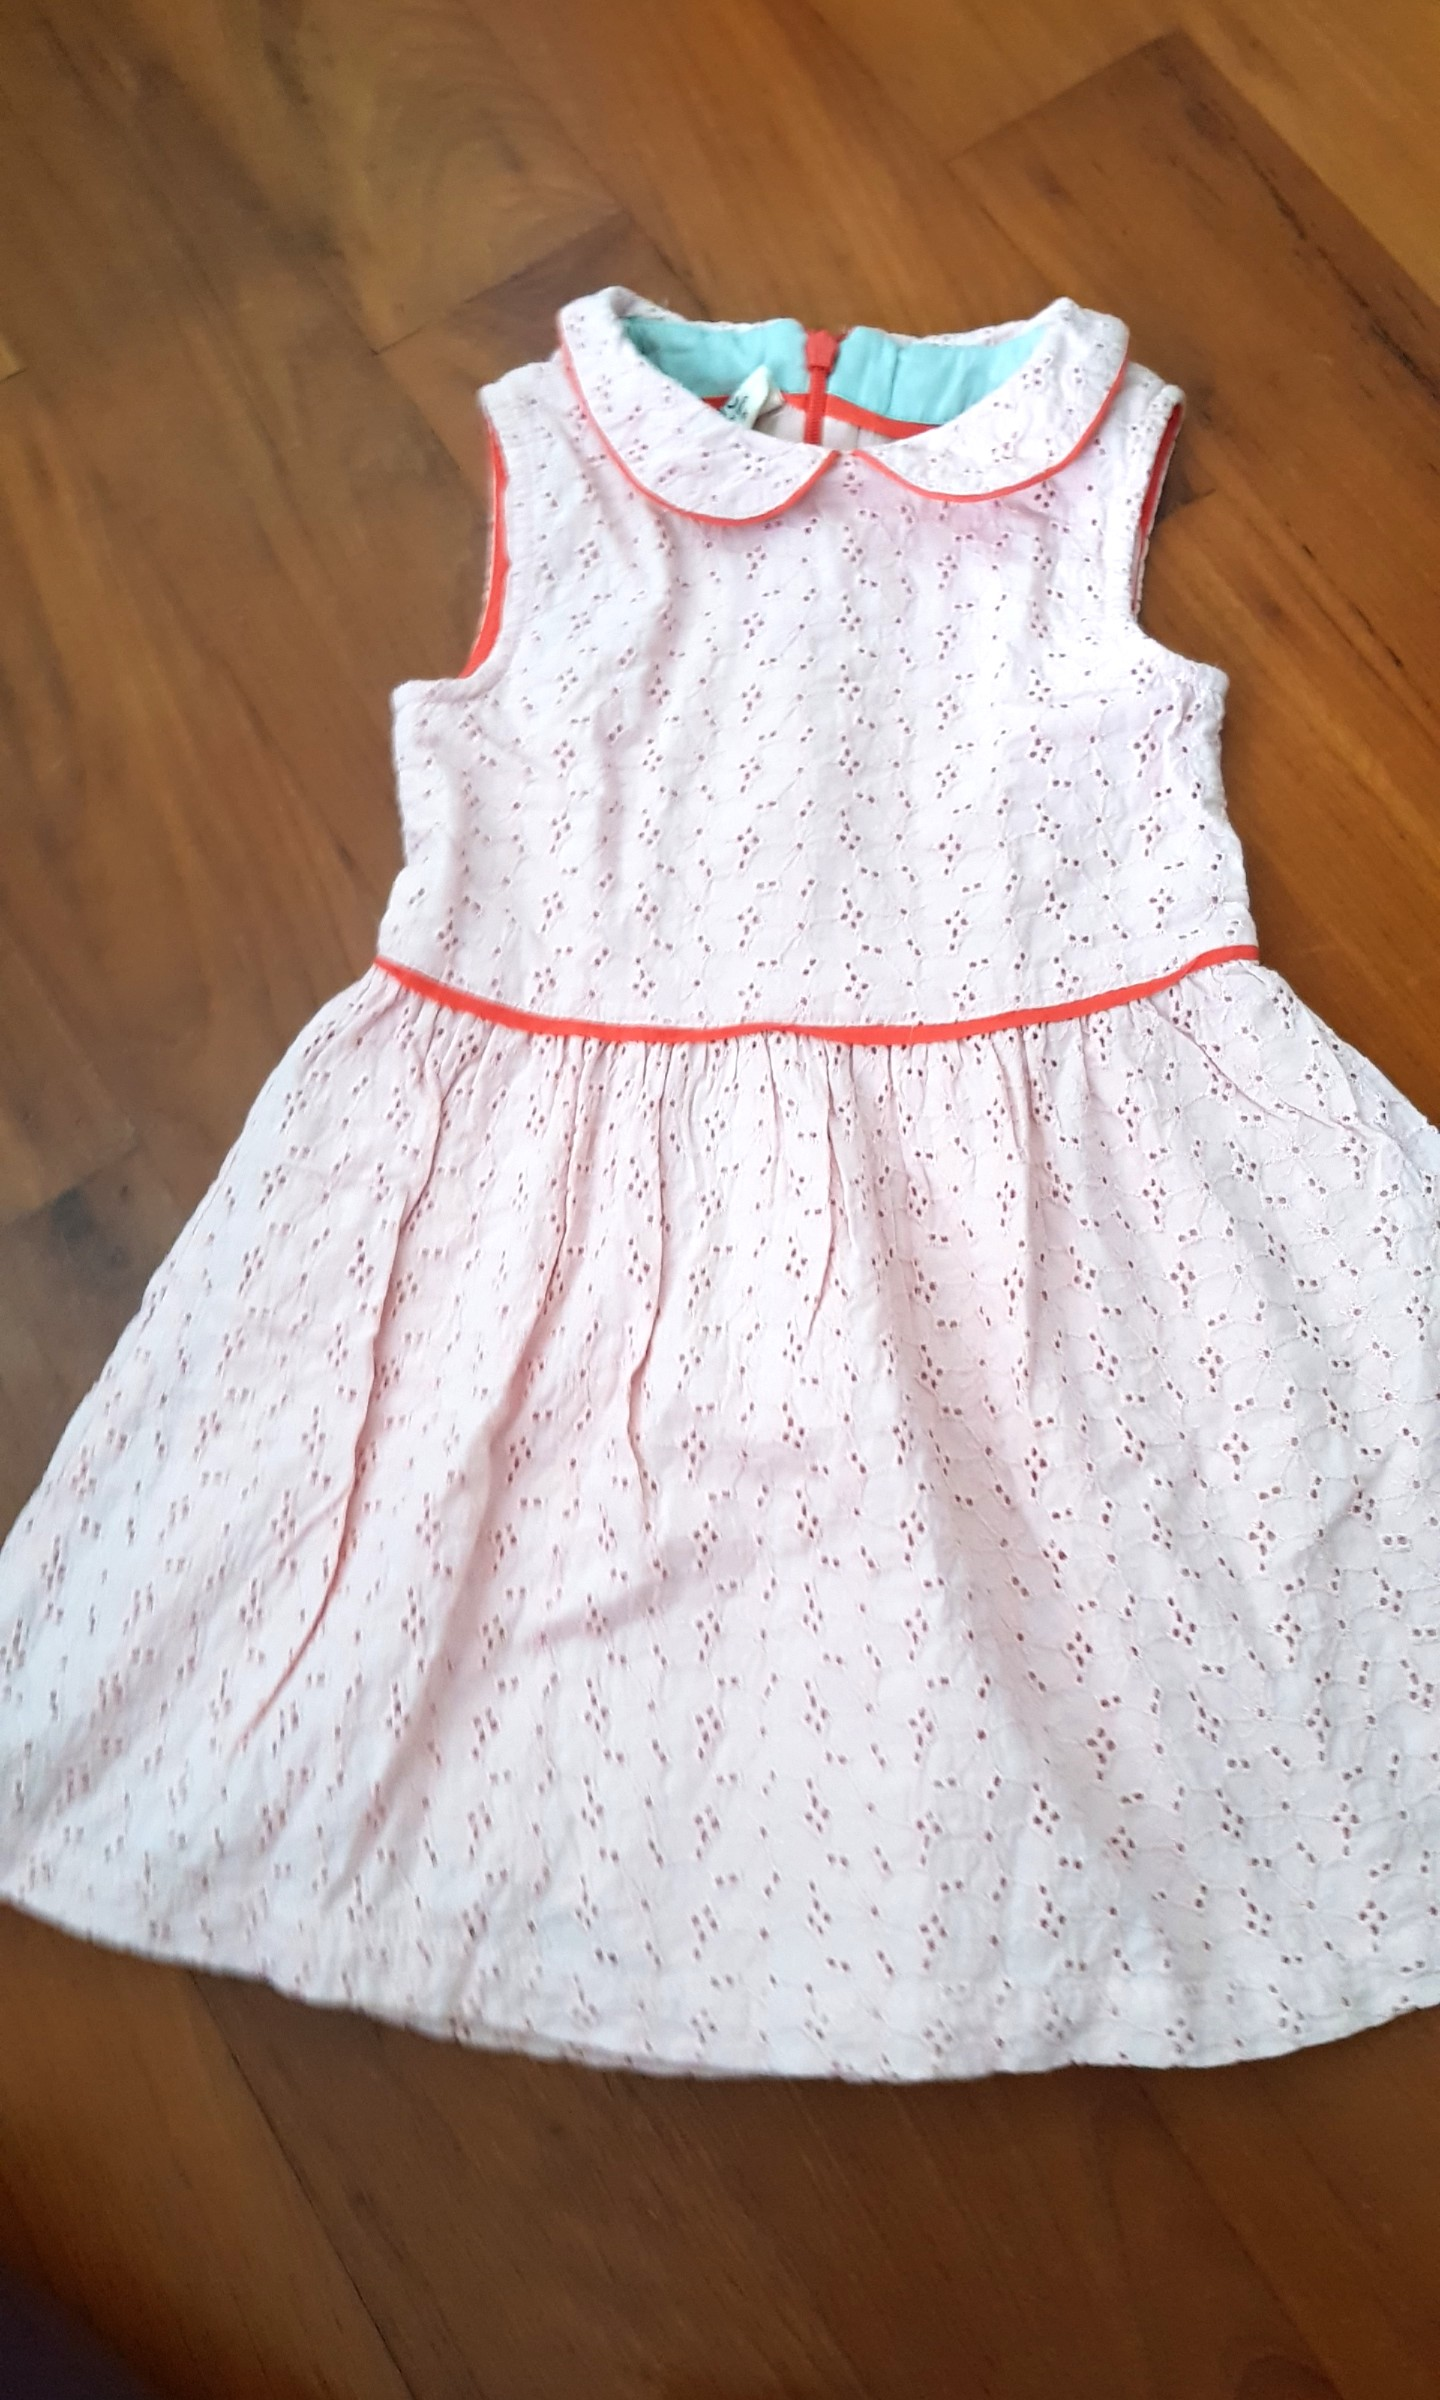 373b9c5803a1f Baby Girl Dress Mini Boden, Babies & Kids, Babies Apparel on Carousell